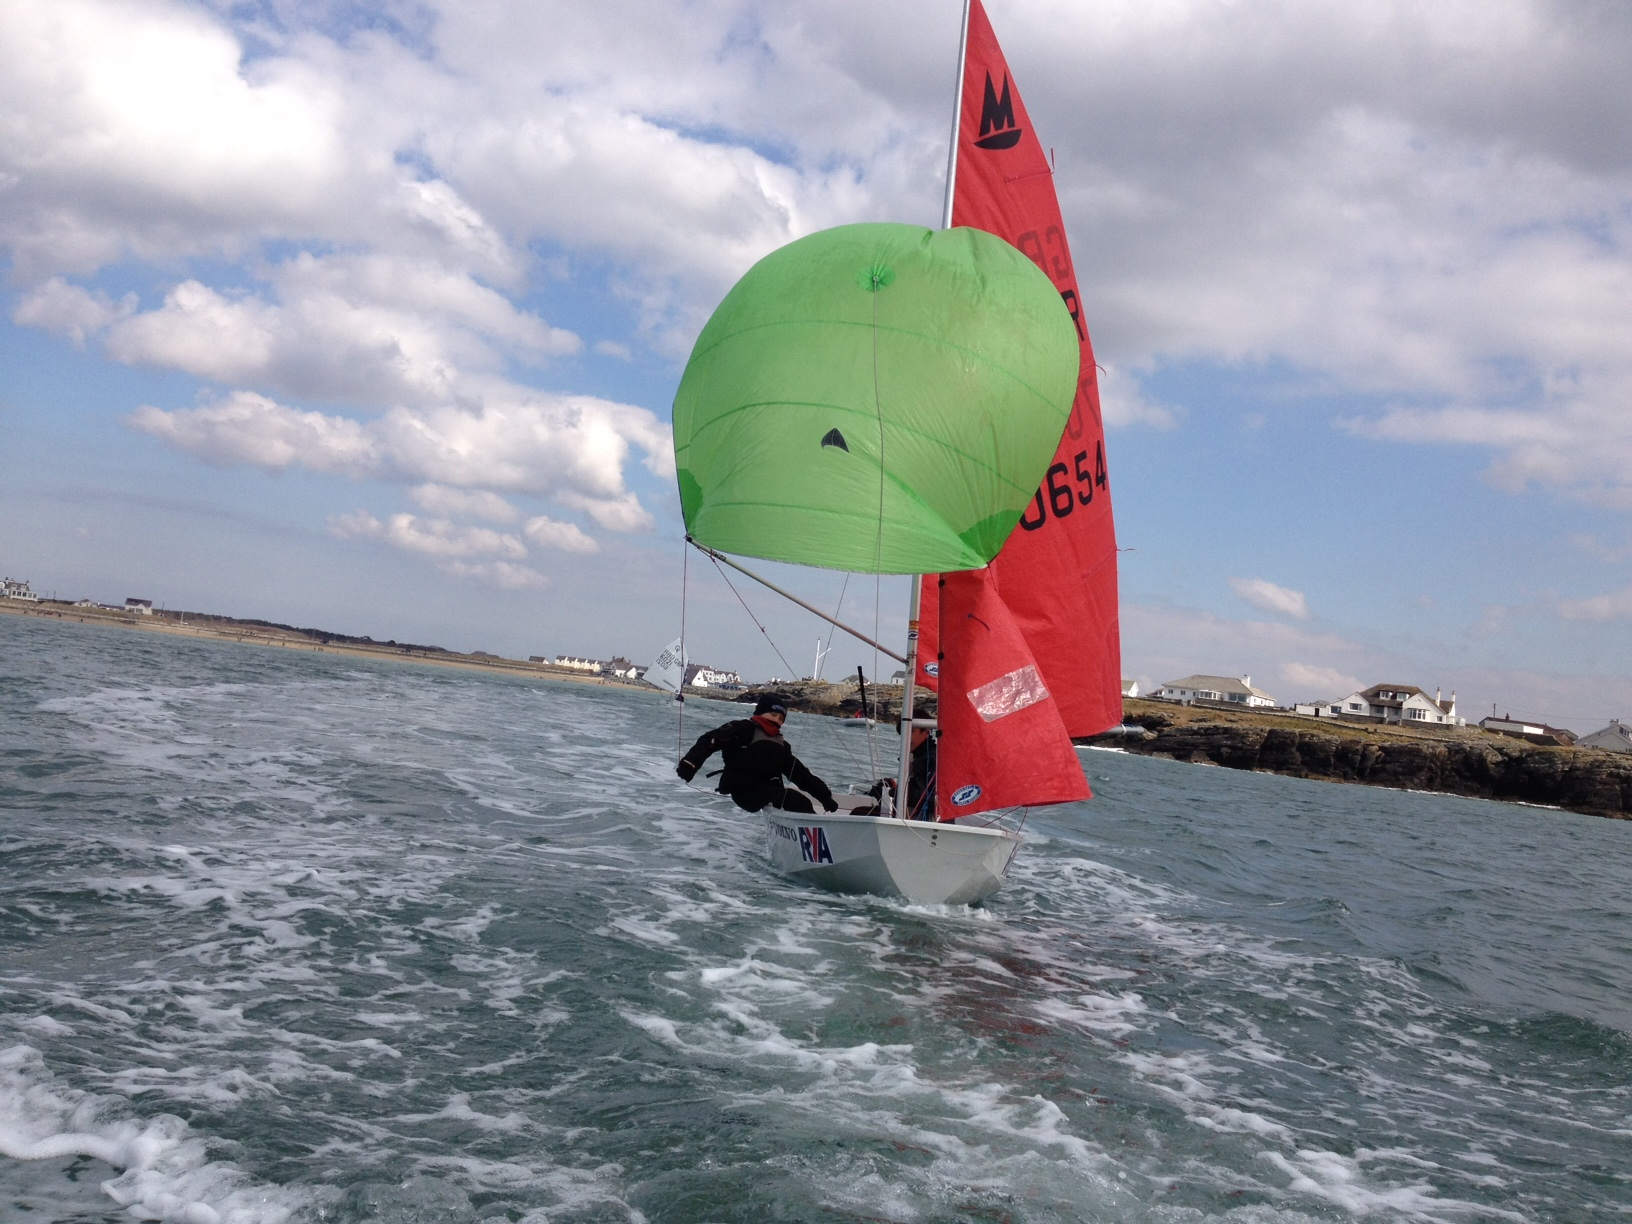 A white GRP Mirror dinghy sailing with green spinnaker on an estuary